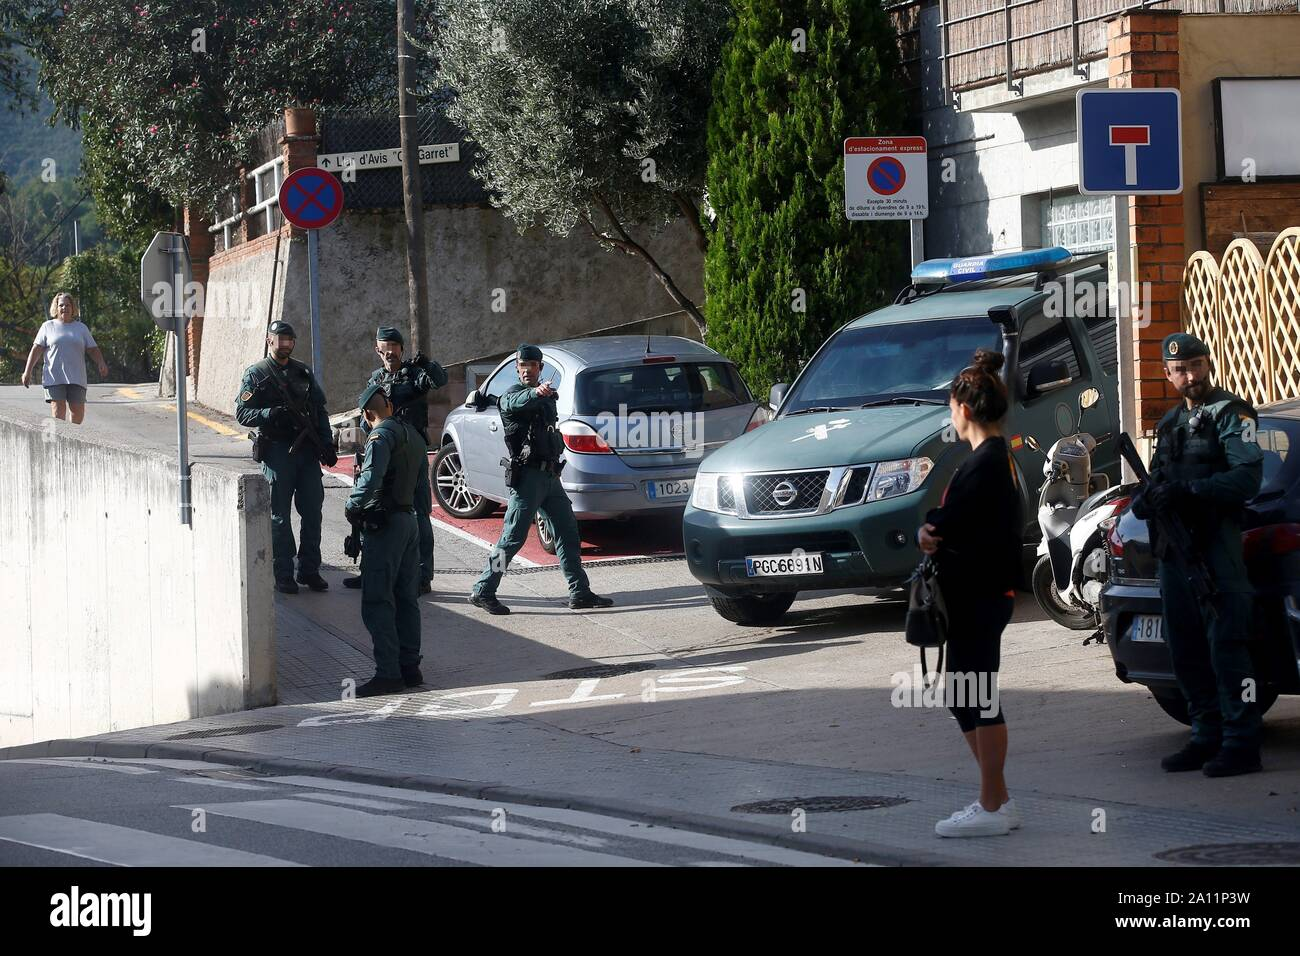 Sant Fost De Campcentelles, Spain. 23rd Sep, 2019. Civil Guard agents on guard at a residential area in Sant Fost de Campcentelles, Barcelona, Spain, during one of several researches ordered by a judge of the Audiencia Nacional Number 6 Central Court, 23 September 2019. A total of nine pro-independence people, members of the so-called Committees for the Defense of the Republic (CDR), have been arrested accused of planning violent actions. Credit: Quique Garcia (EDITORS NOTE, FACES BLURRED BY SOURCE IN ACCORDANCE TO SPANISH LAW)/EFE/Alamy Live News Stock Photo